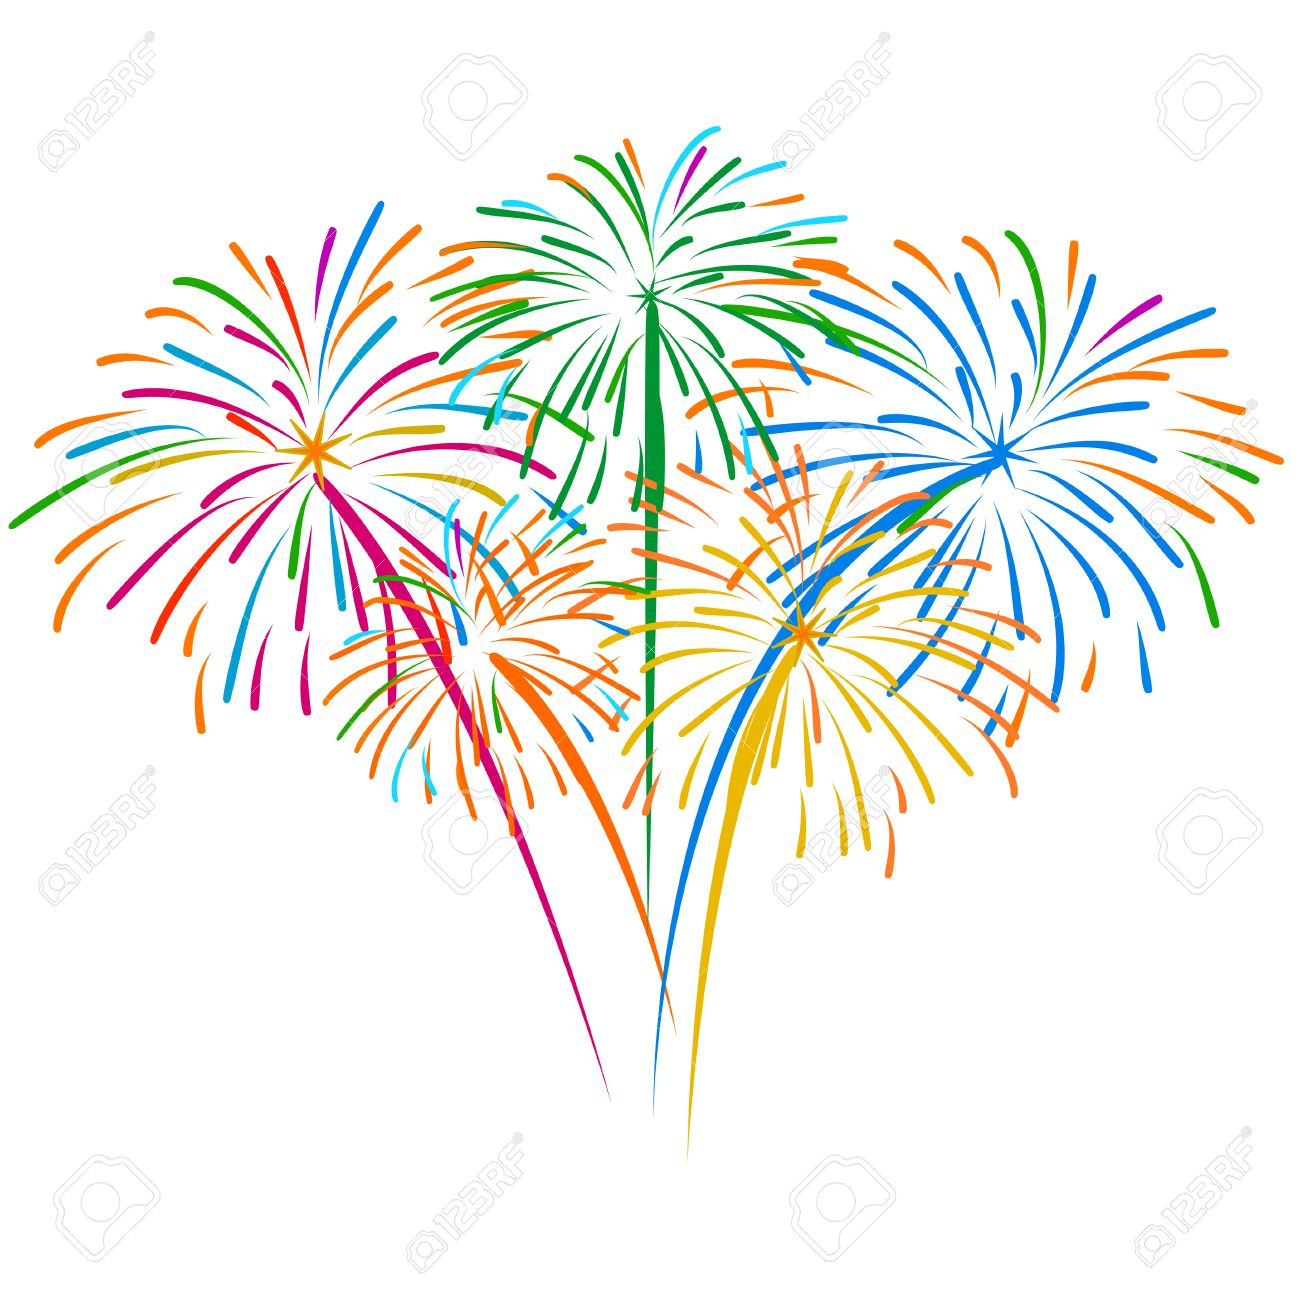 fireworks vector royalty free cliparts vectors and stock rh 123rf com Fireworks Clip Art Fireworks Transparent Background